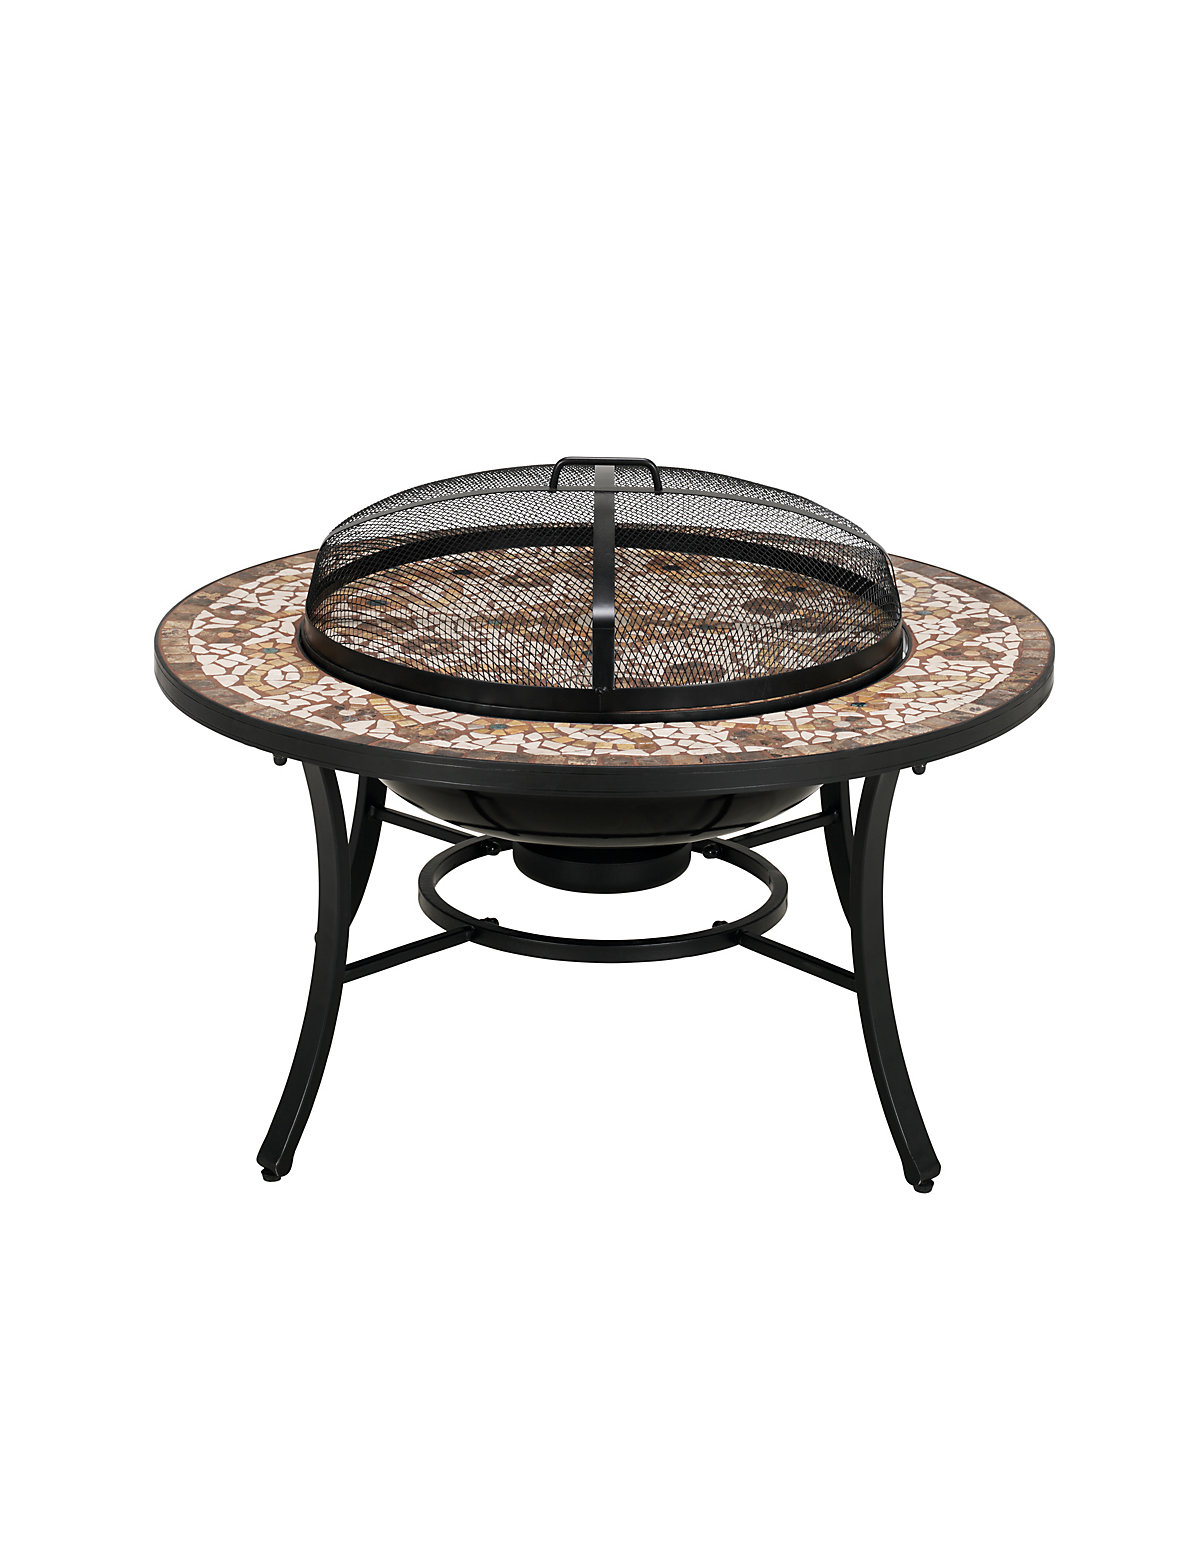 Verona Firepit Dining Table This With Handcrafted Stone Mosaic